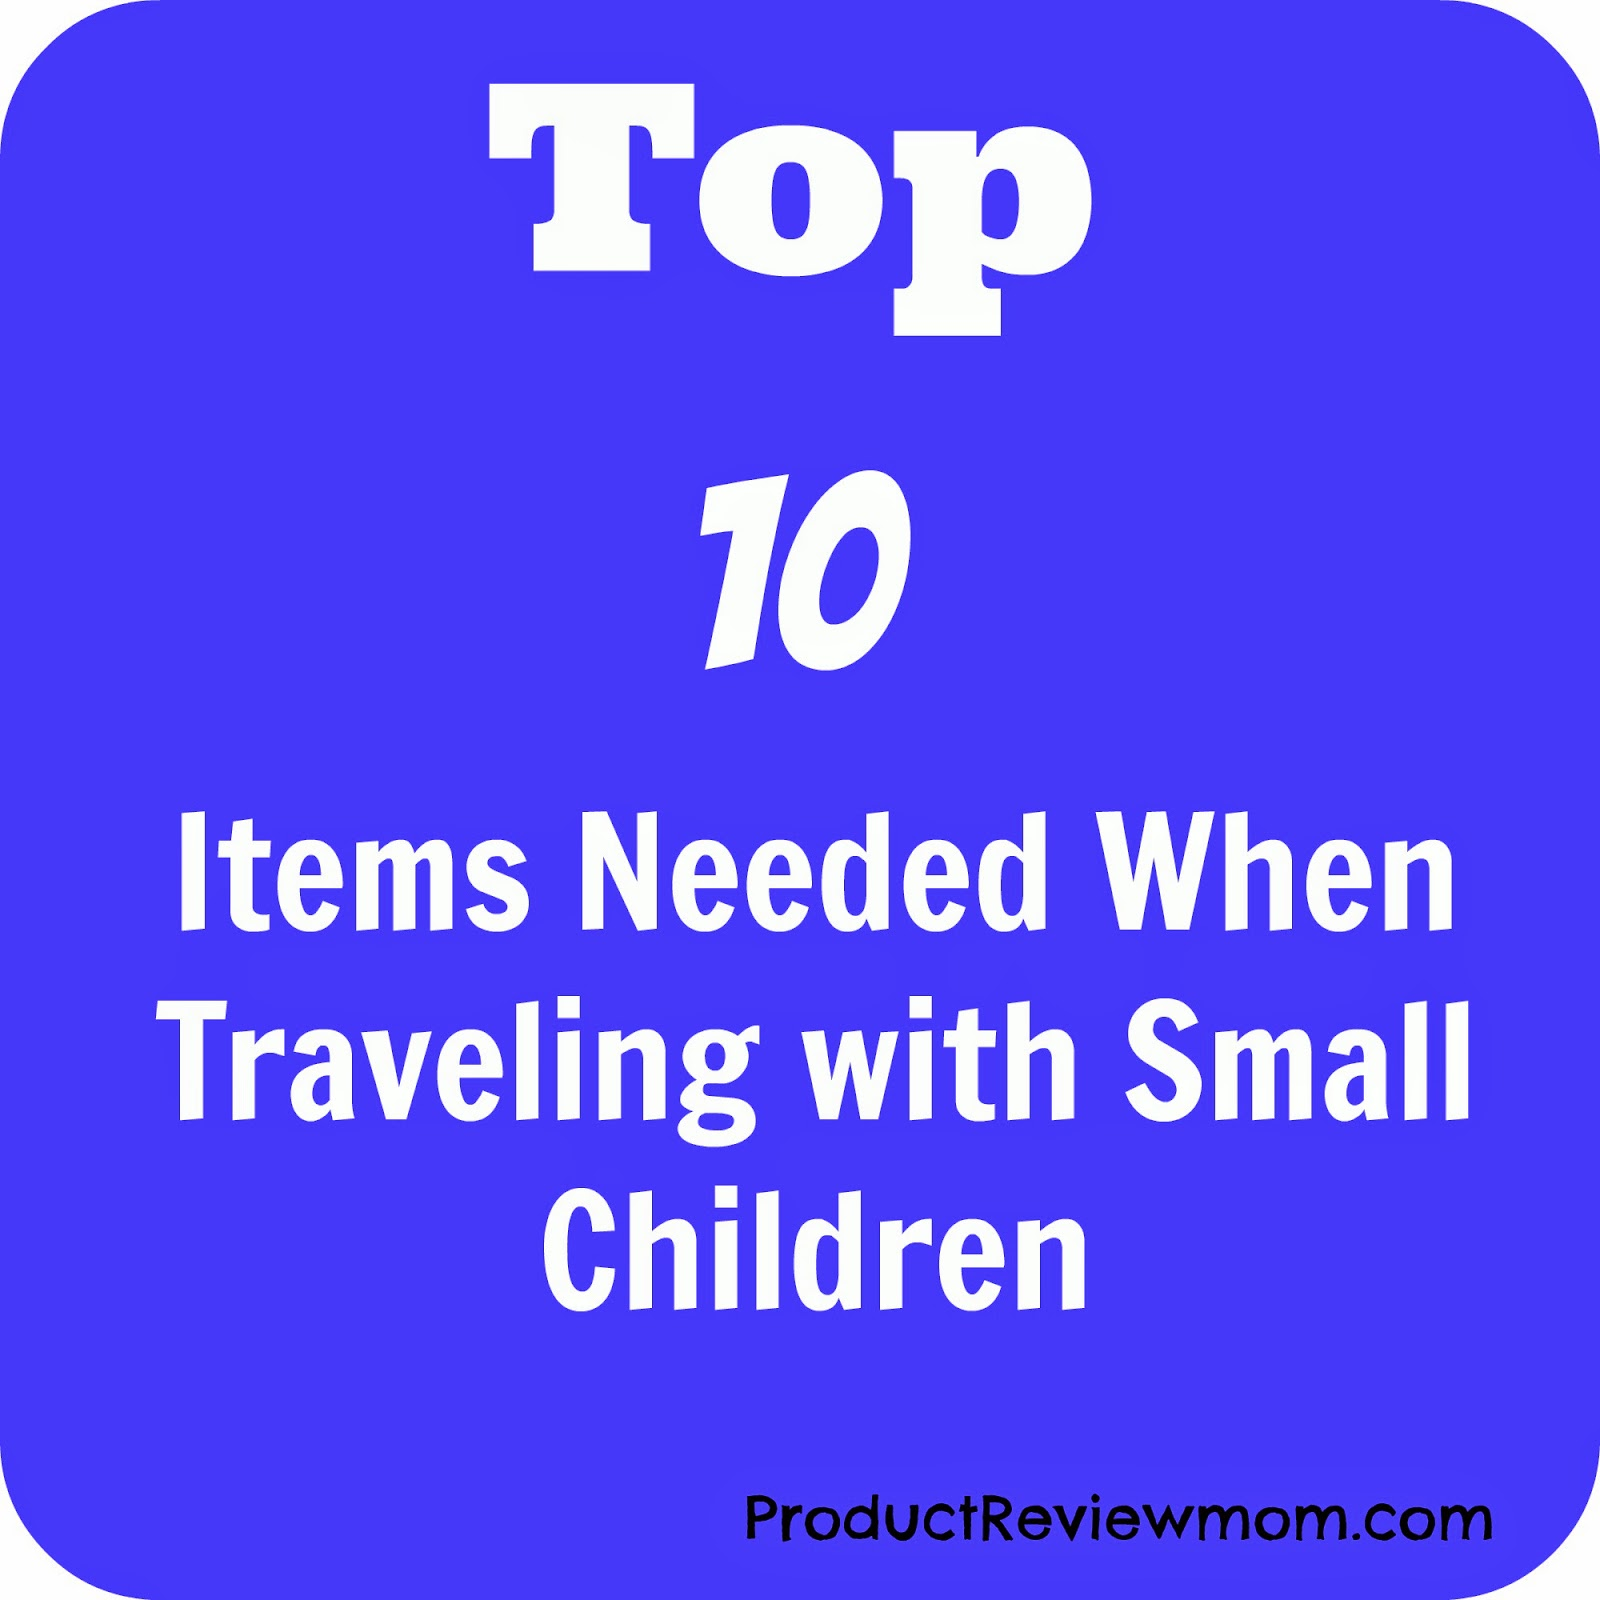 Top 10 Items Needed When Traveling with Small Children (Summer Blog Series) via ProductReviewMom.com